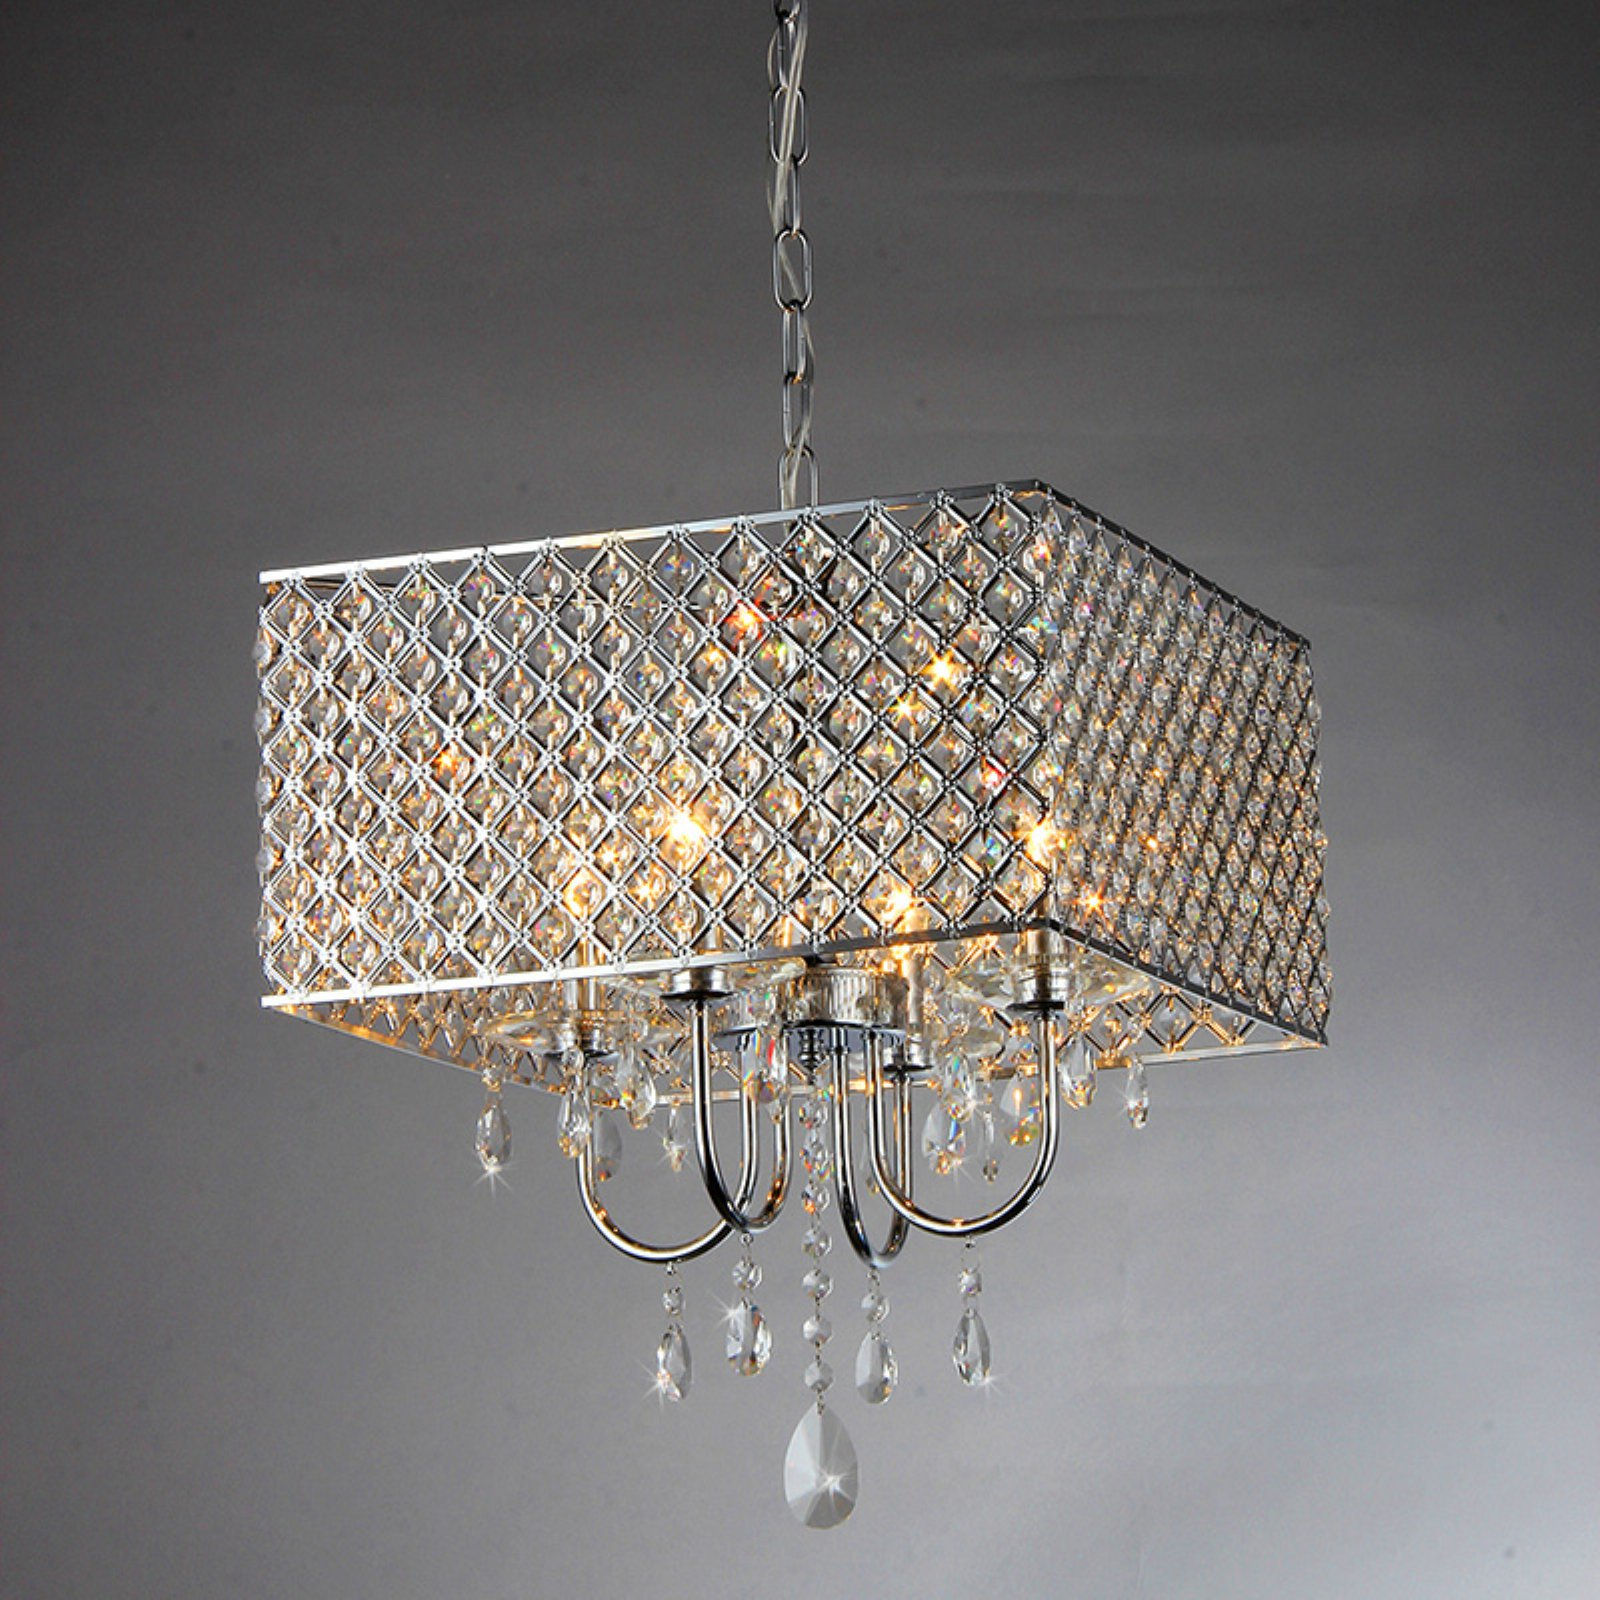 Warehouse of Tiffany Royal Crystal RL5623 Chandelier